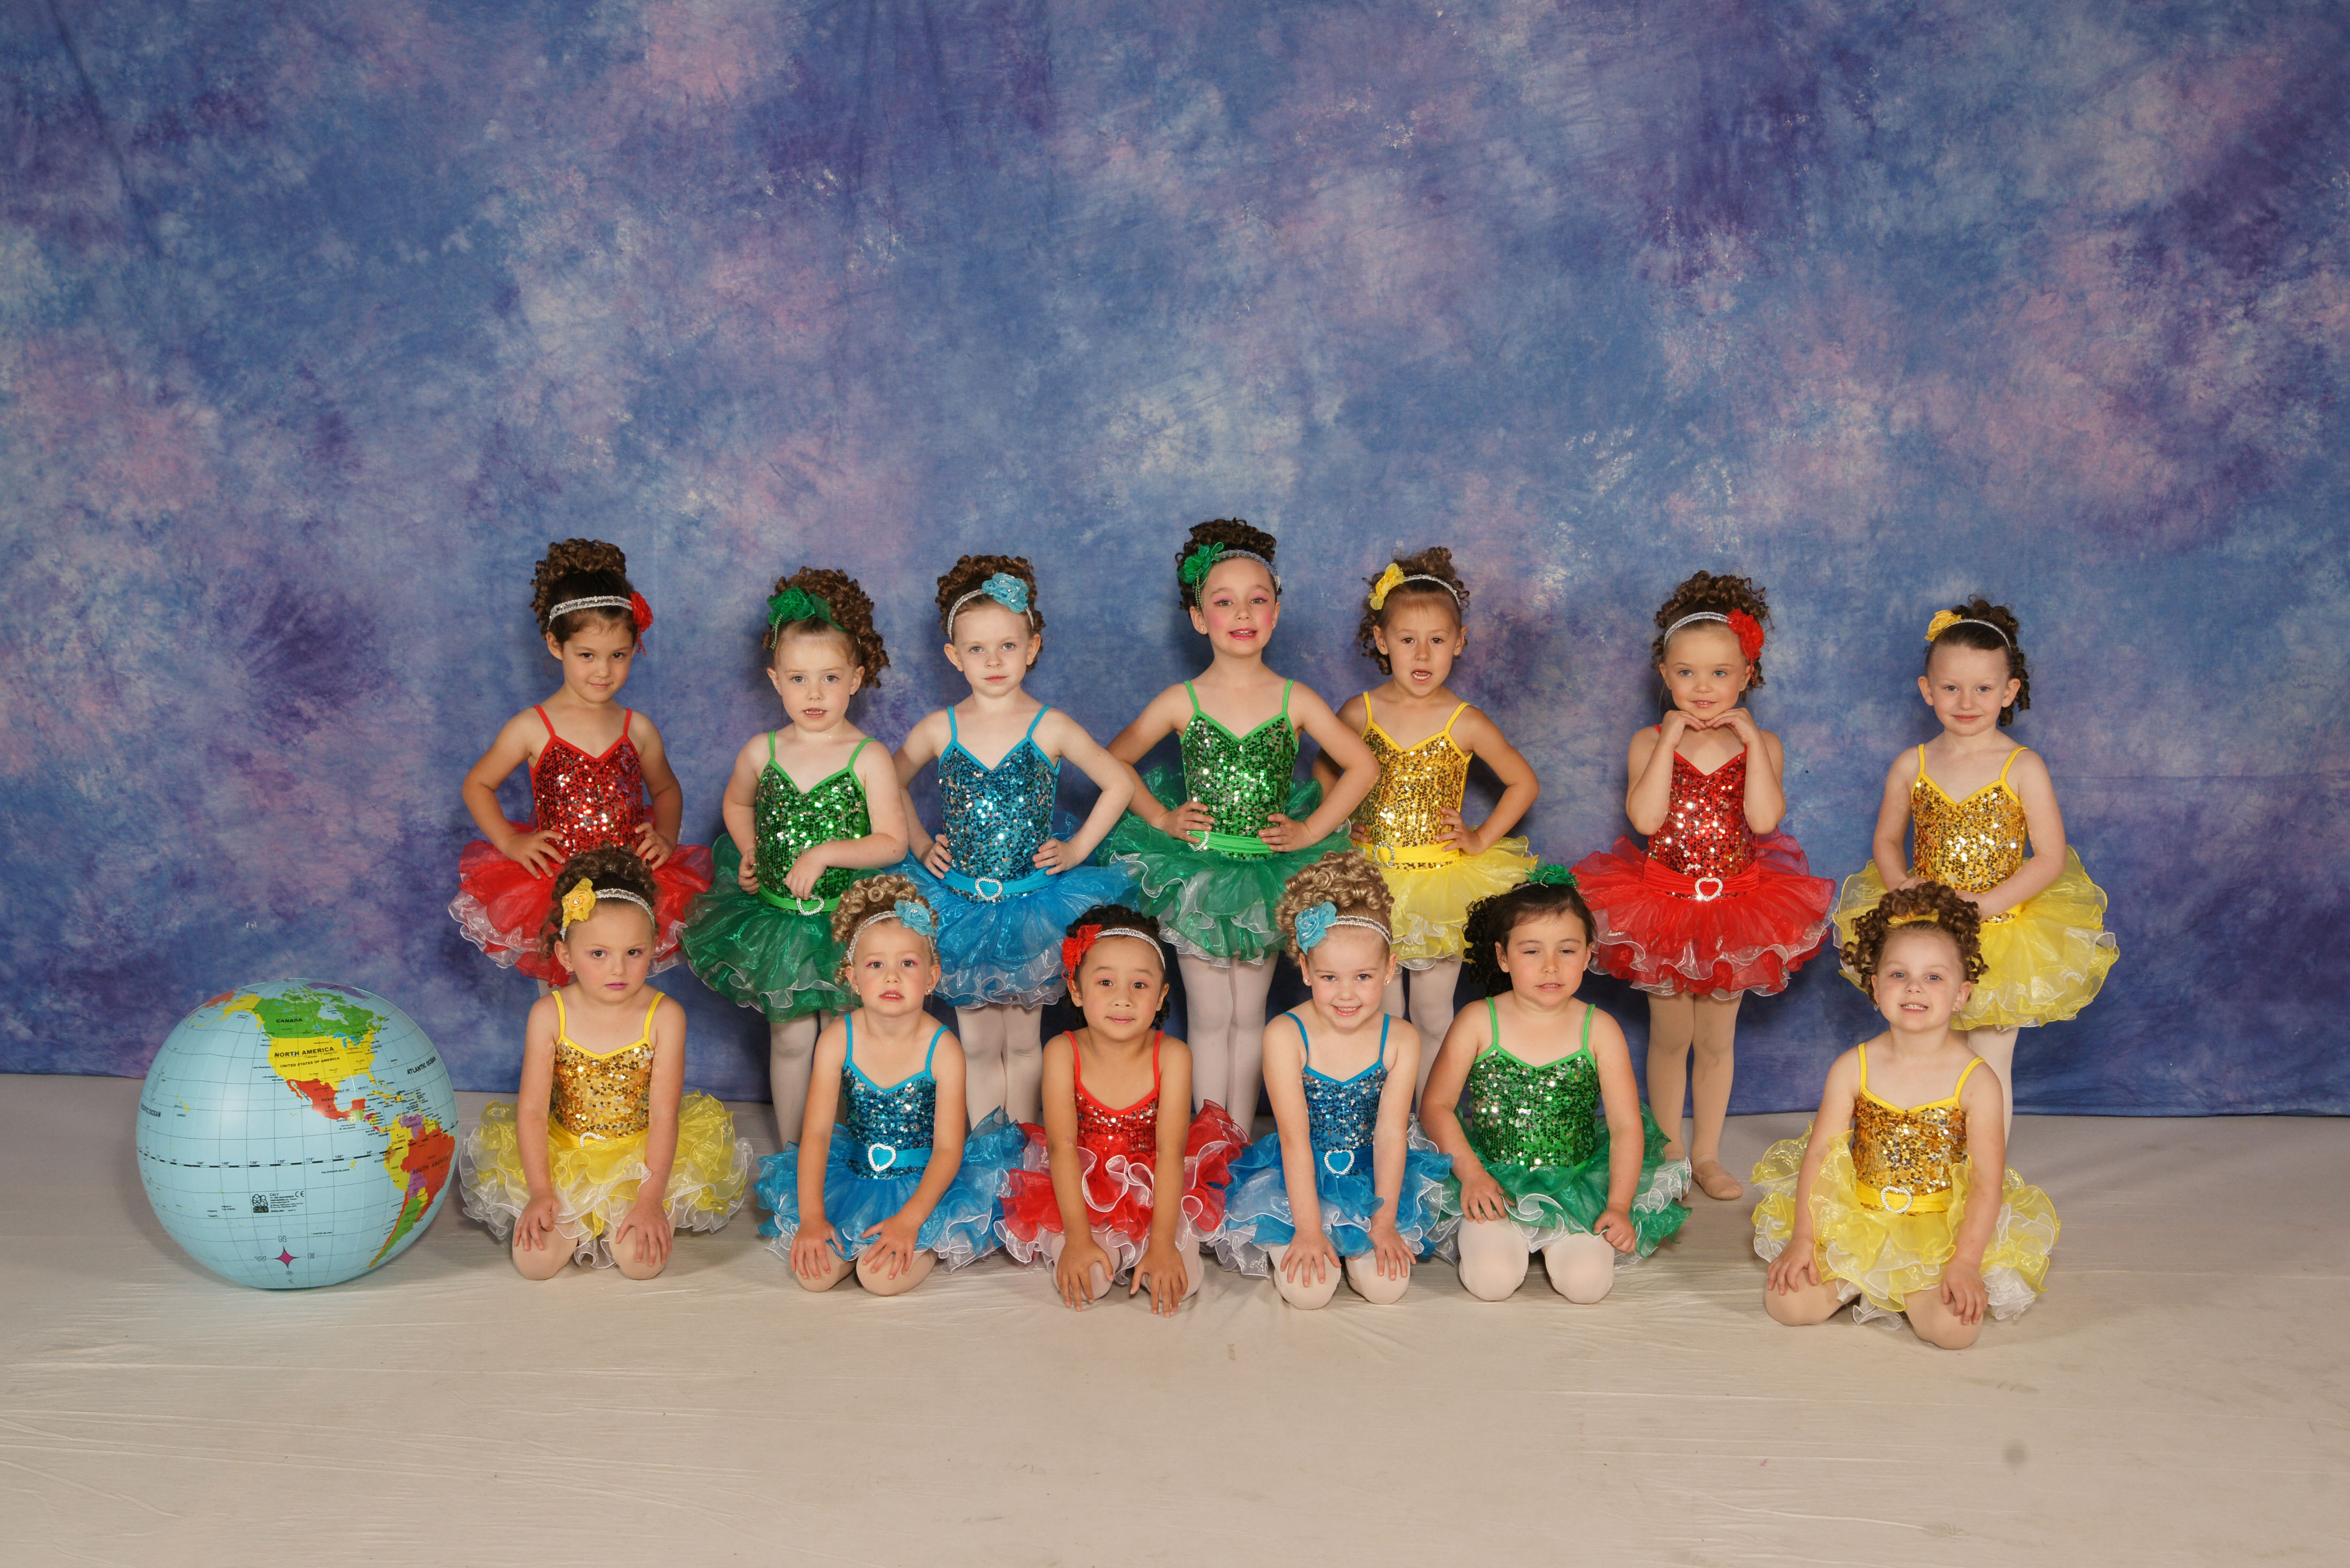 Tiny Dazzlers – It's a small world.